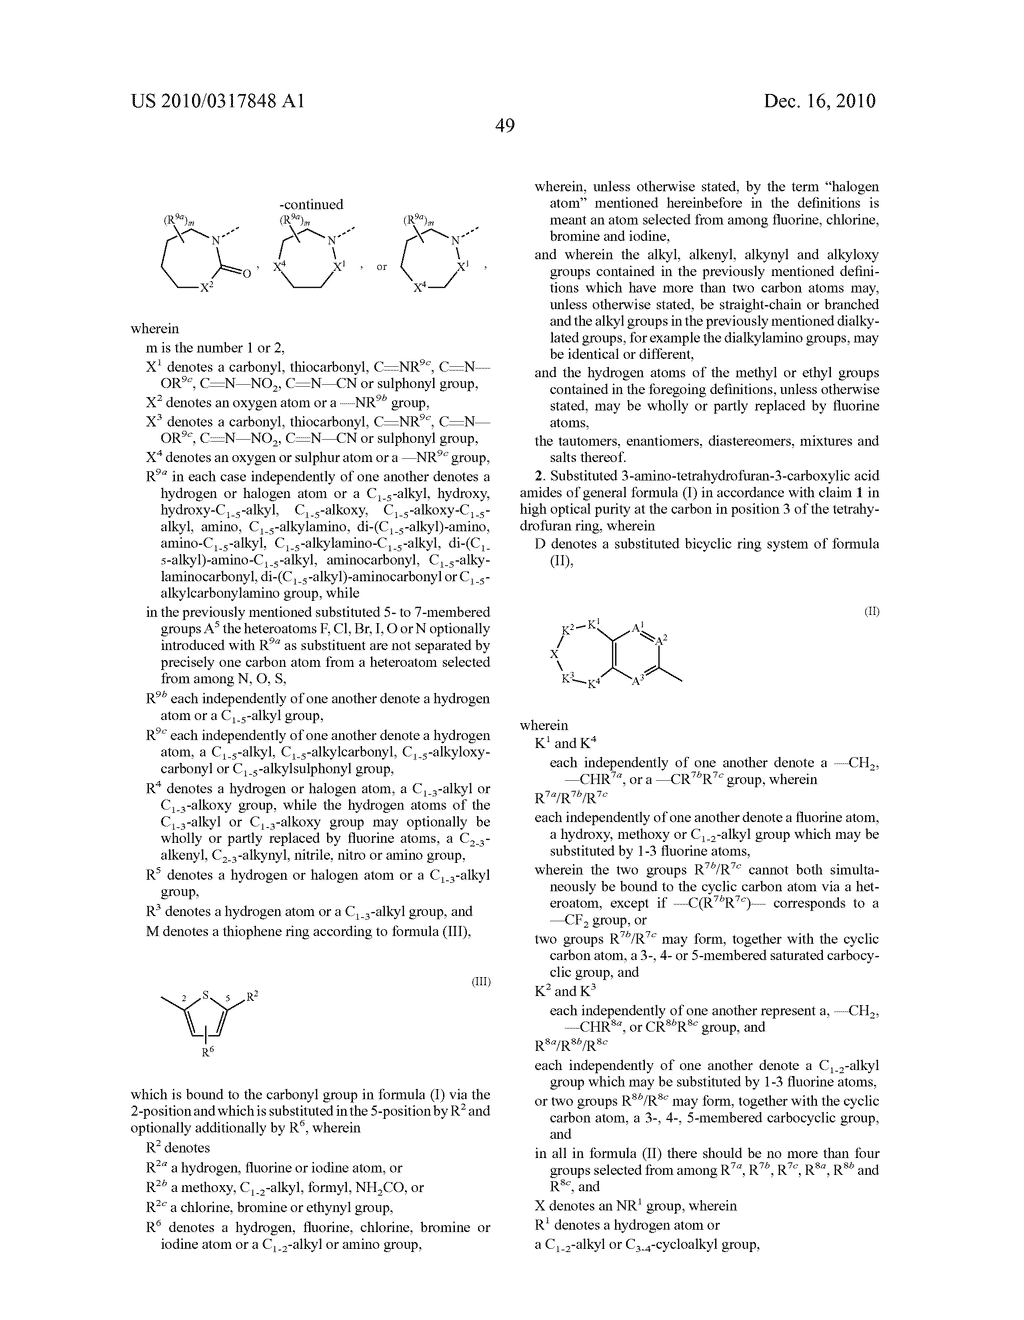 PROCESS FOR THE SYNTHESIS OF DERIVATIVES OF 3-AMINO-TETRAHYDROFURAN-3-CARBOXYLIC ACID AND USE THEREOF AS MEDICAMENTS - diagram, schematic, and image 54